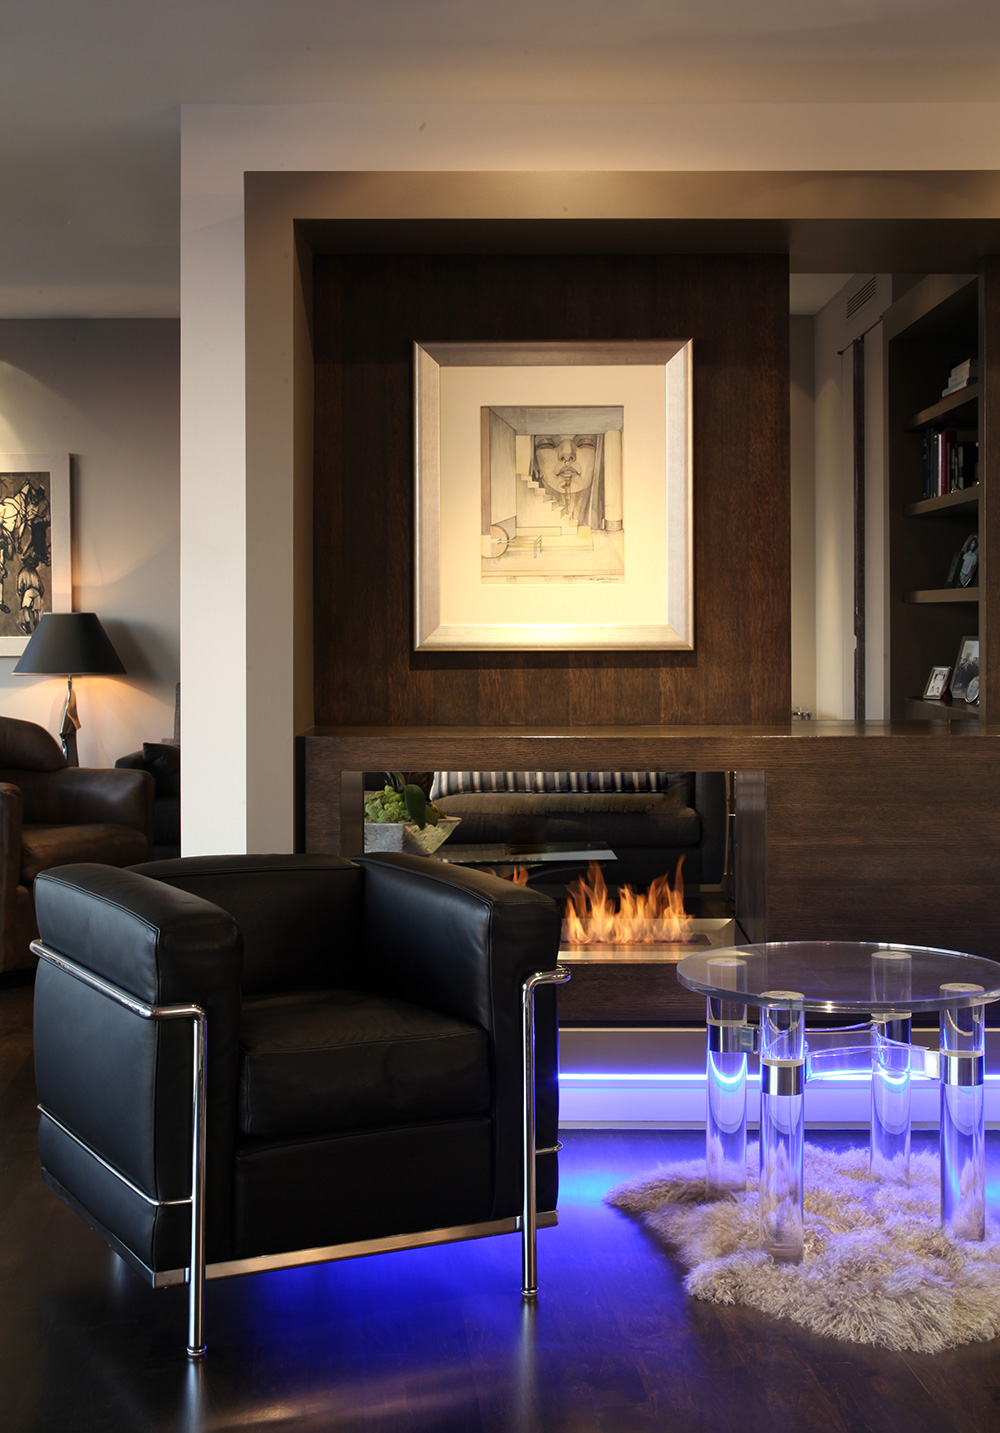 Superb living area detail in this condo remodel in Los Angeles, CA